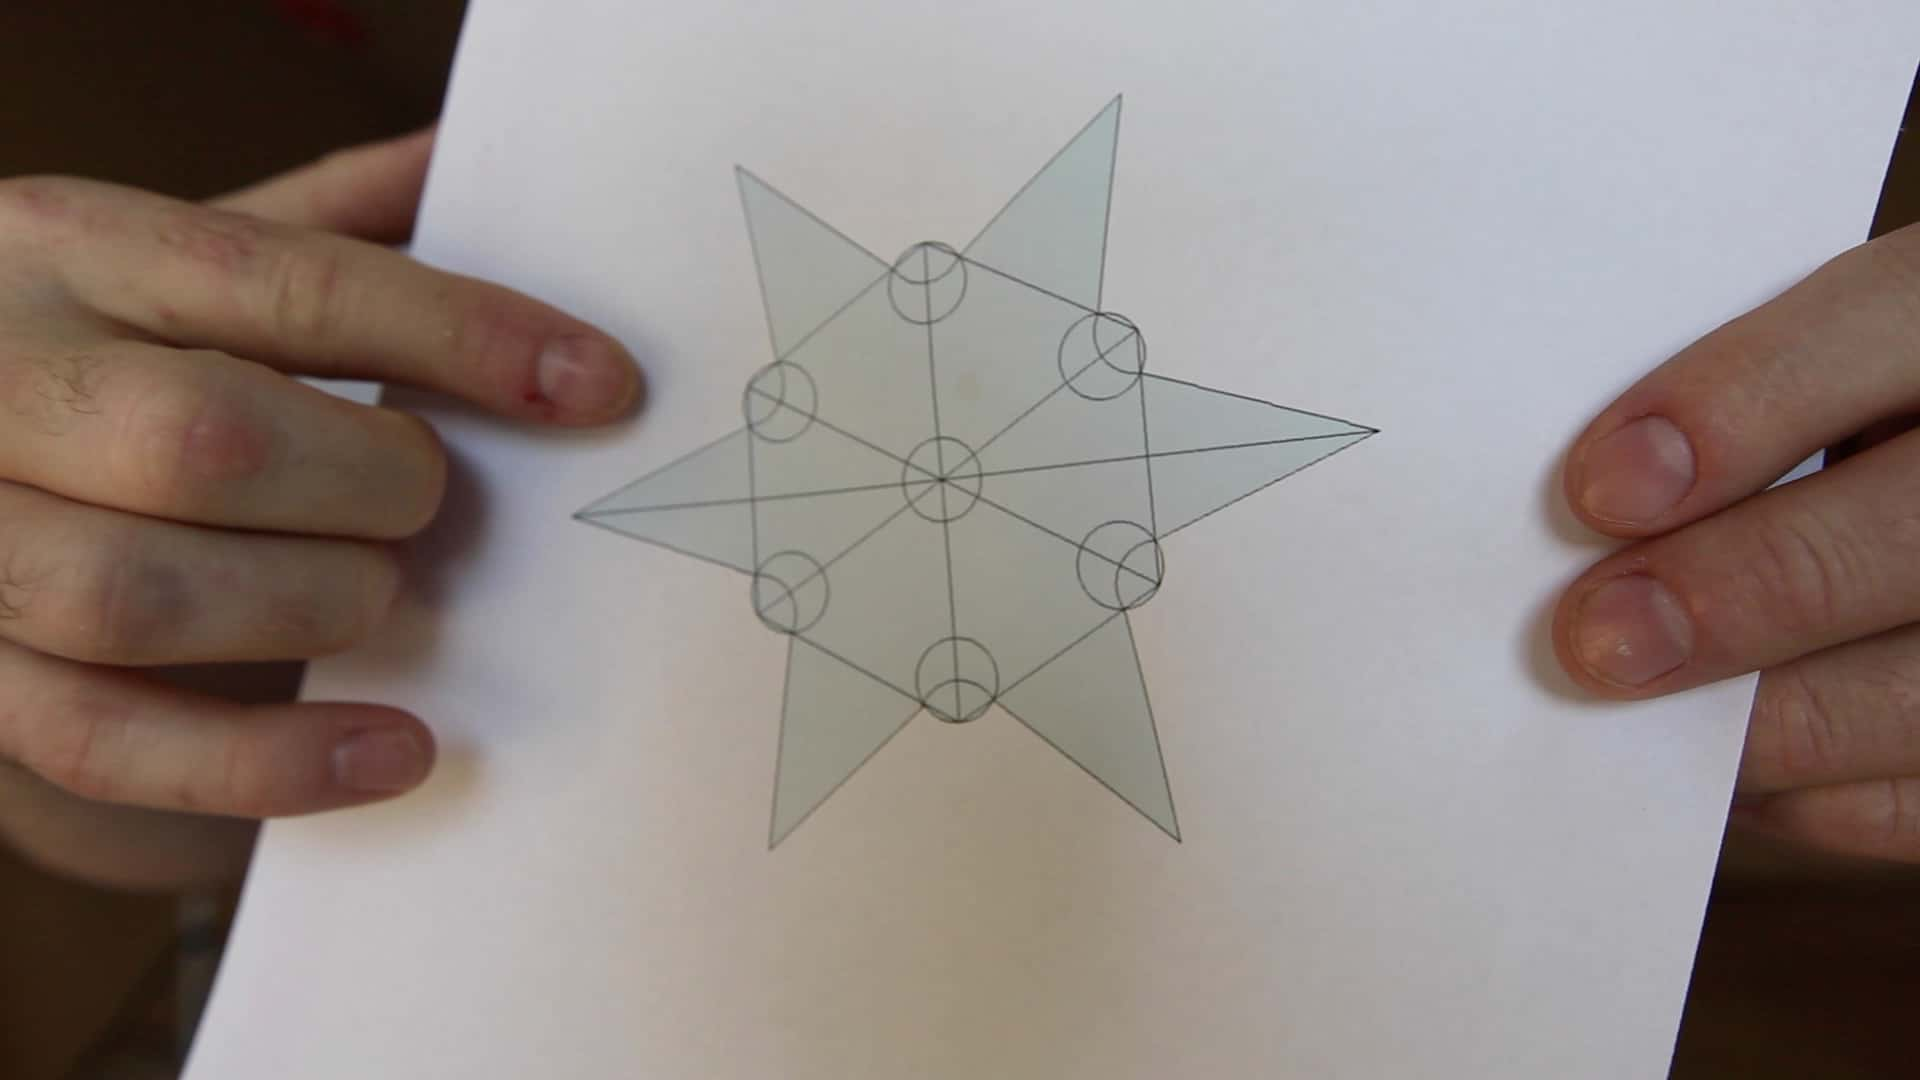 Make a Throwing Star from a Saw Blade - The Geek Pub